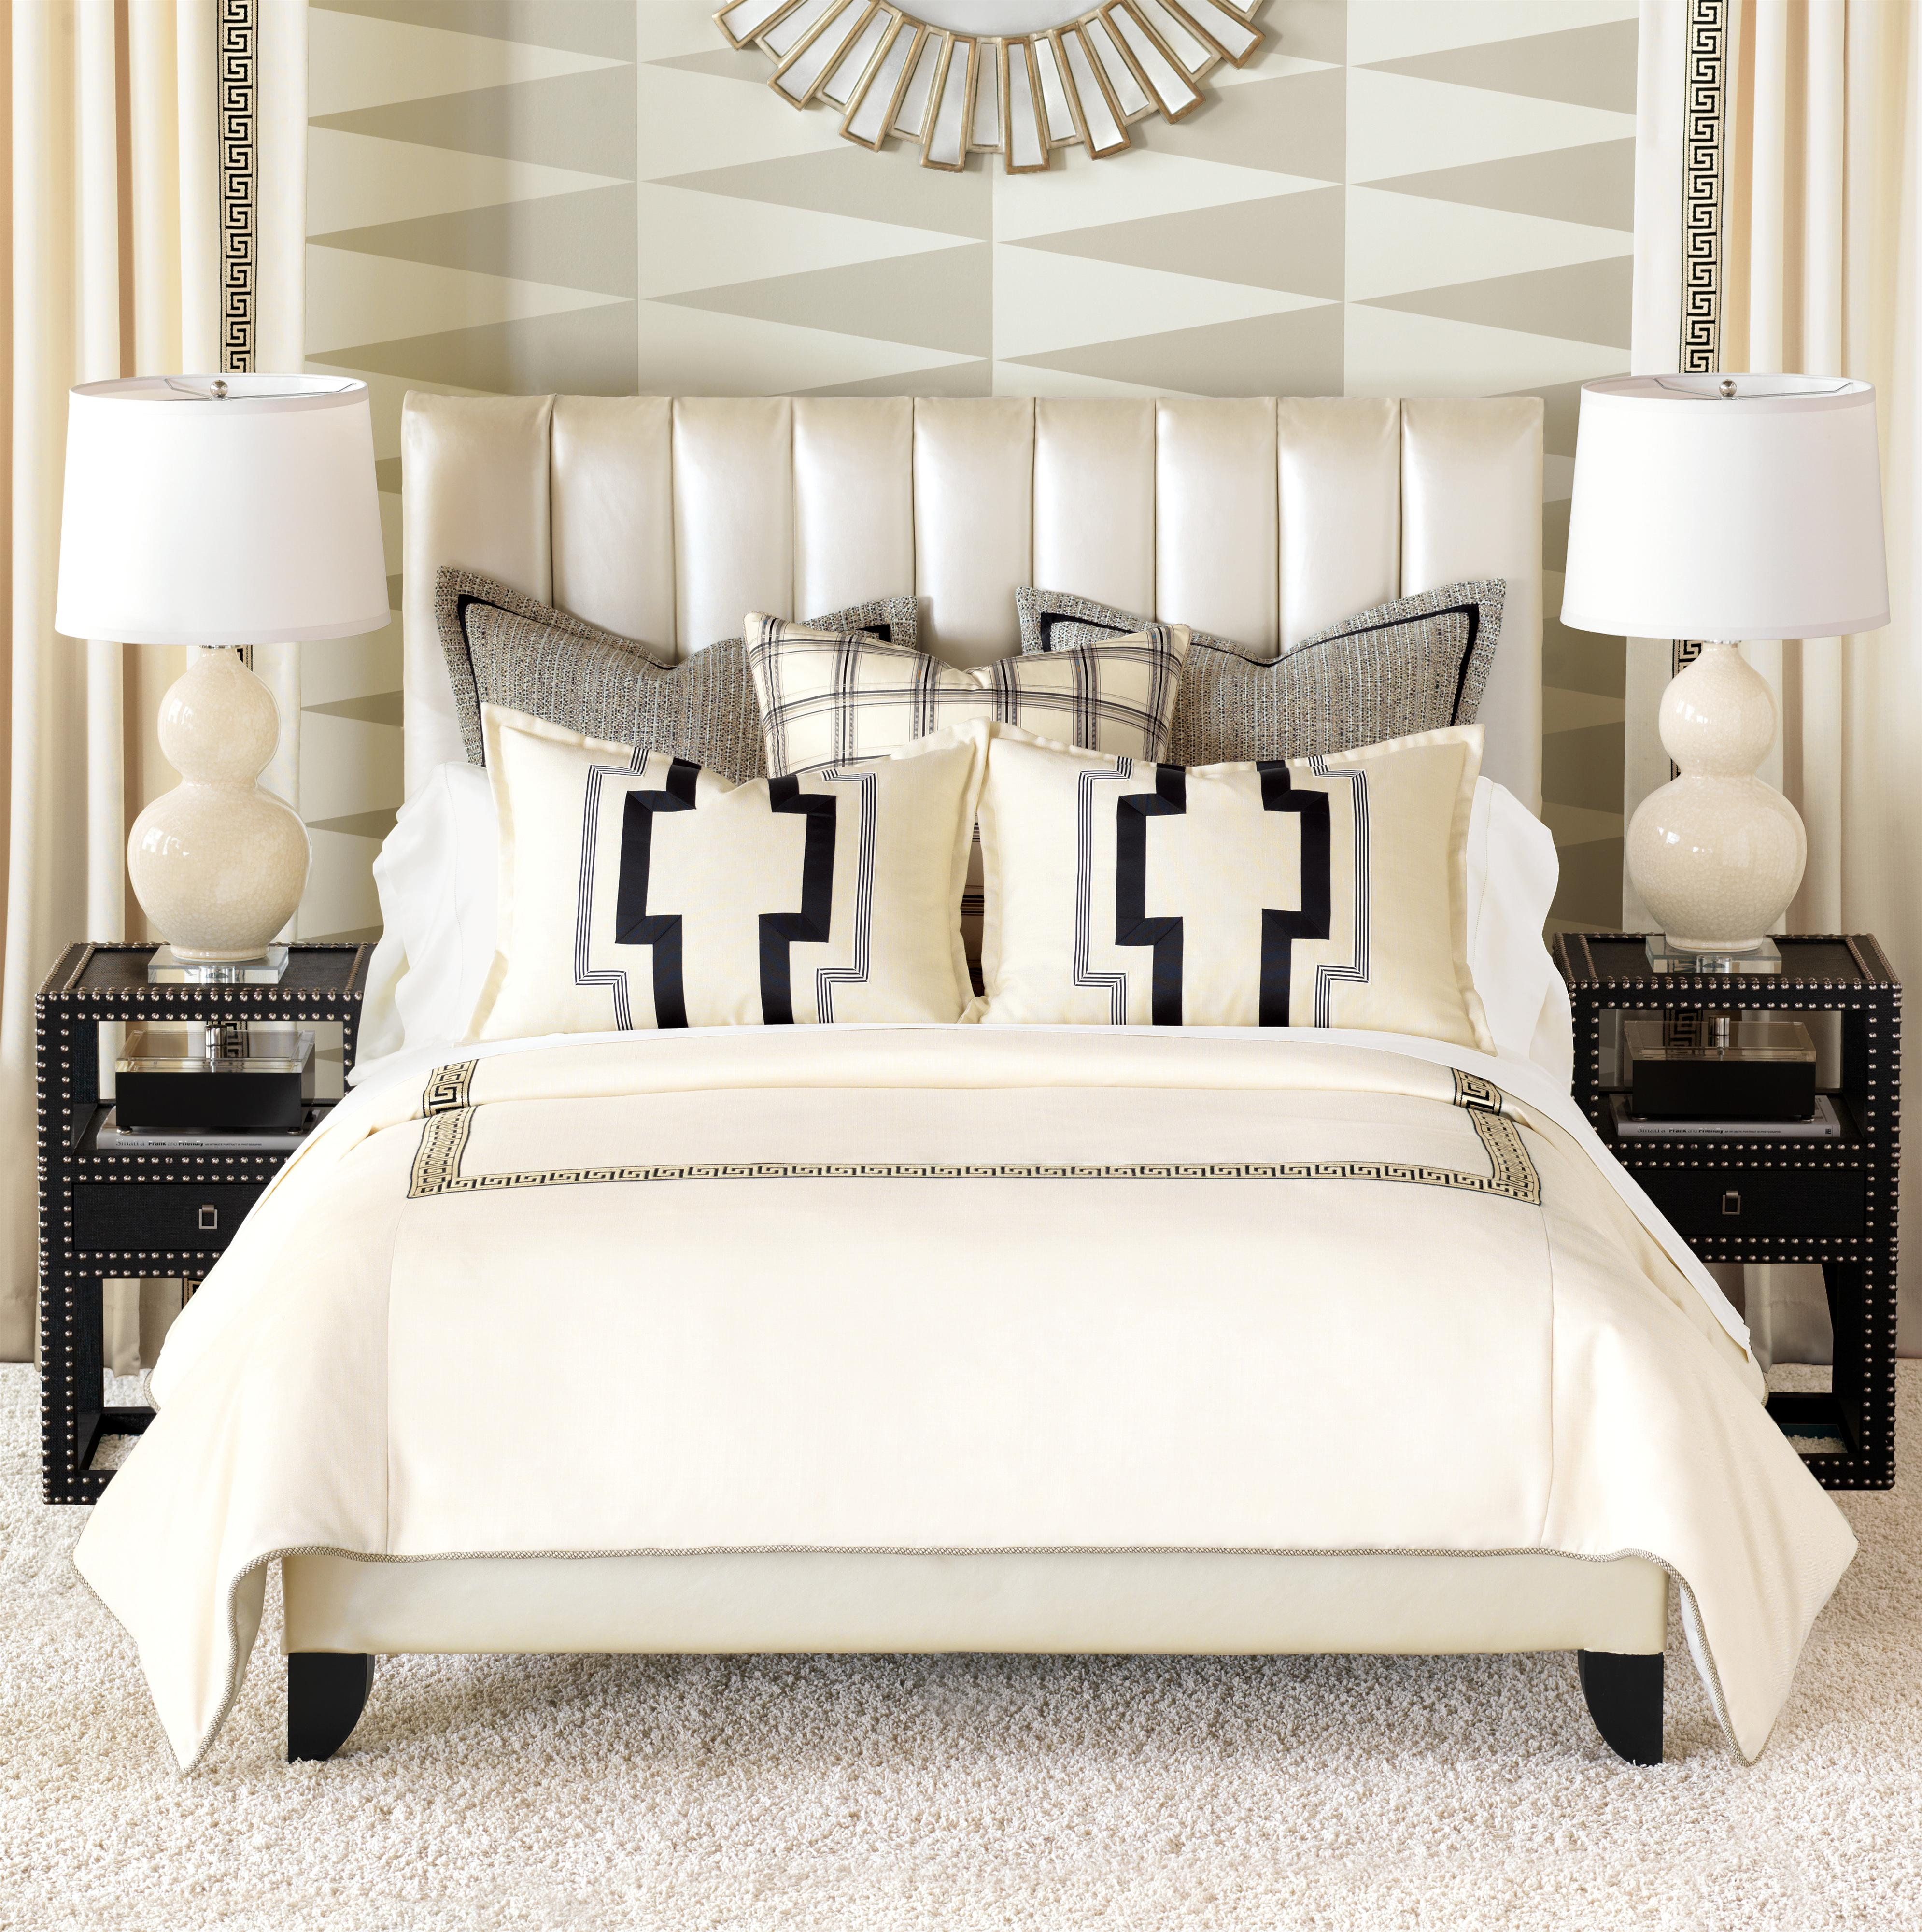 Abernathy Cal King Button-Tufted Comforter by Eastern Accents at Alison Craig Home Furnishings